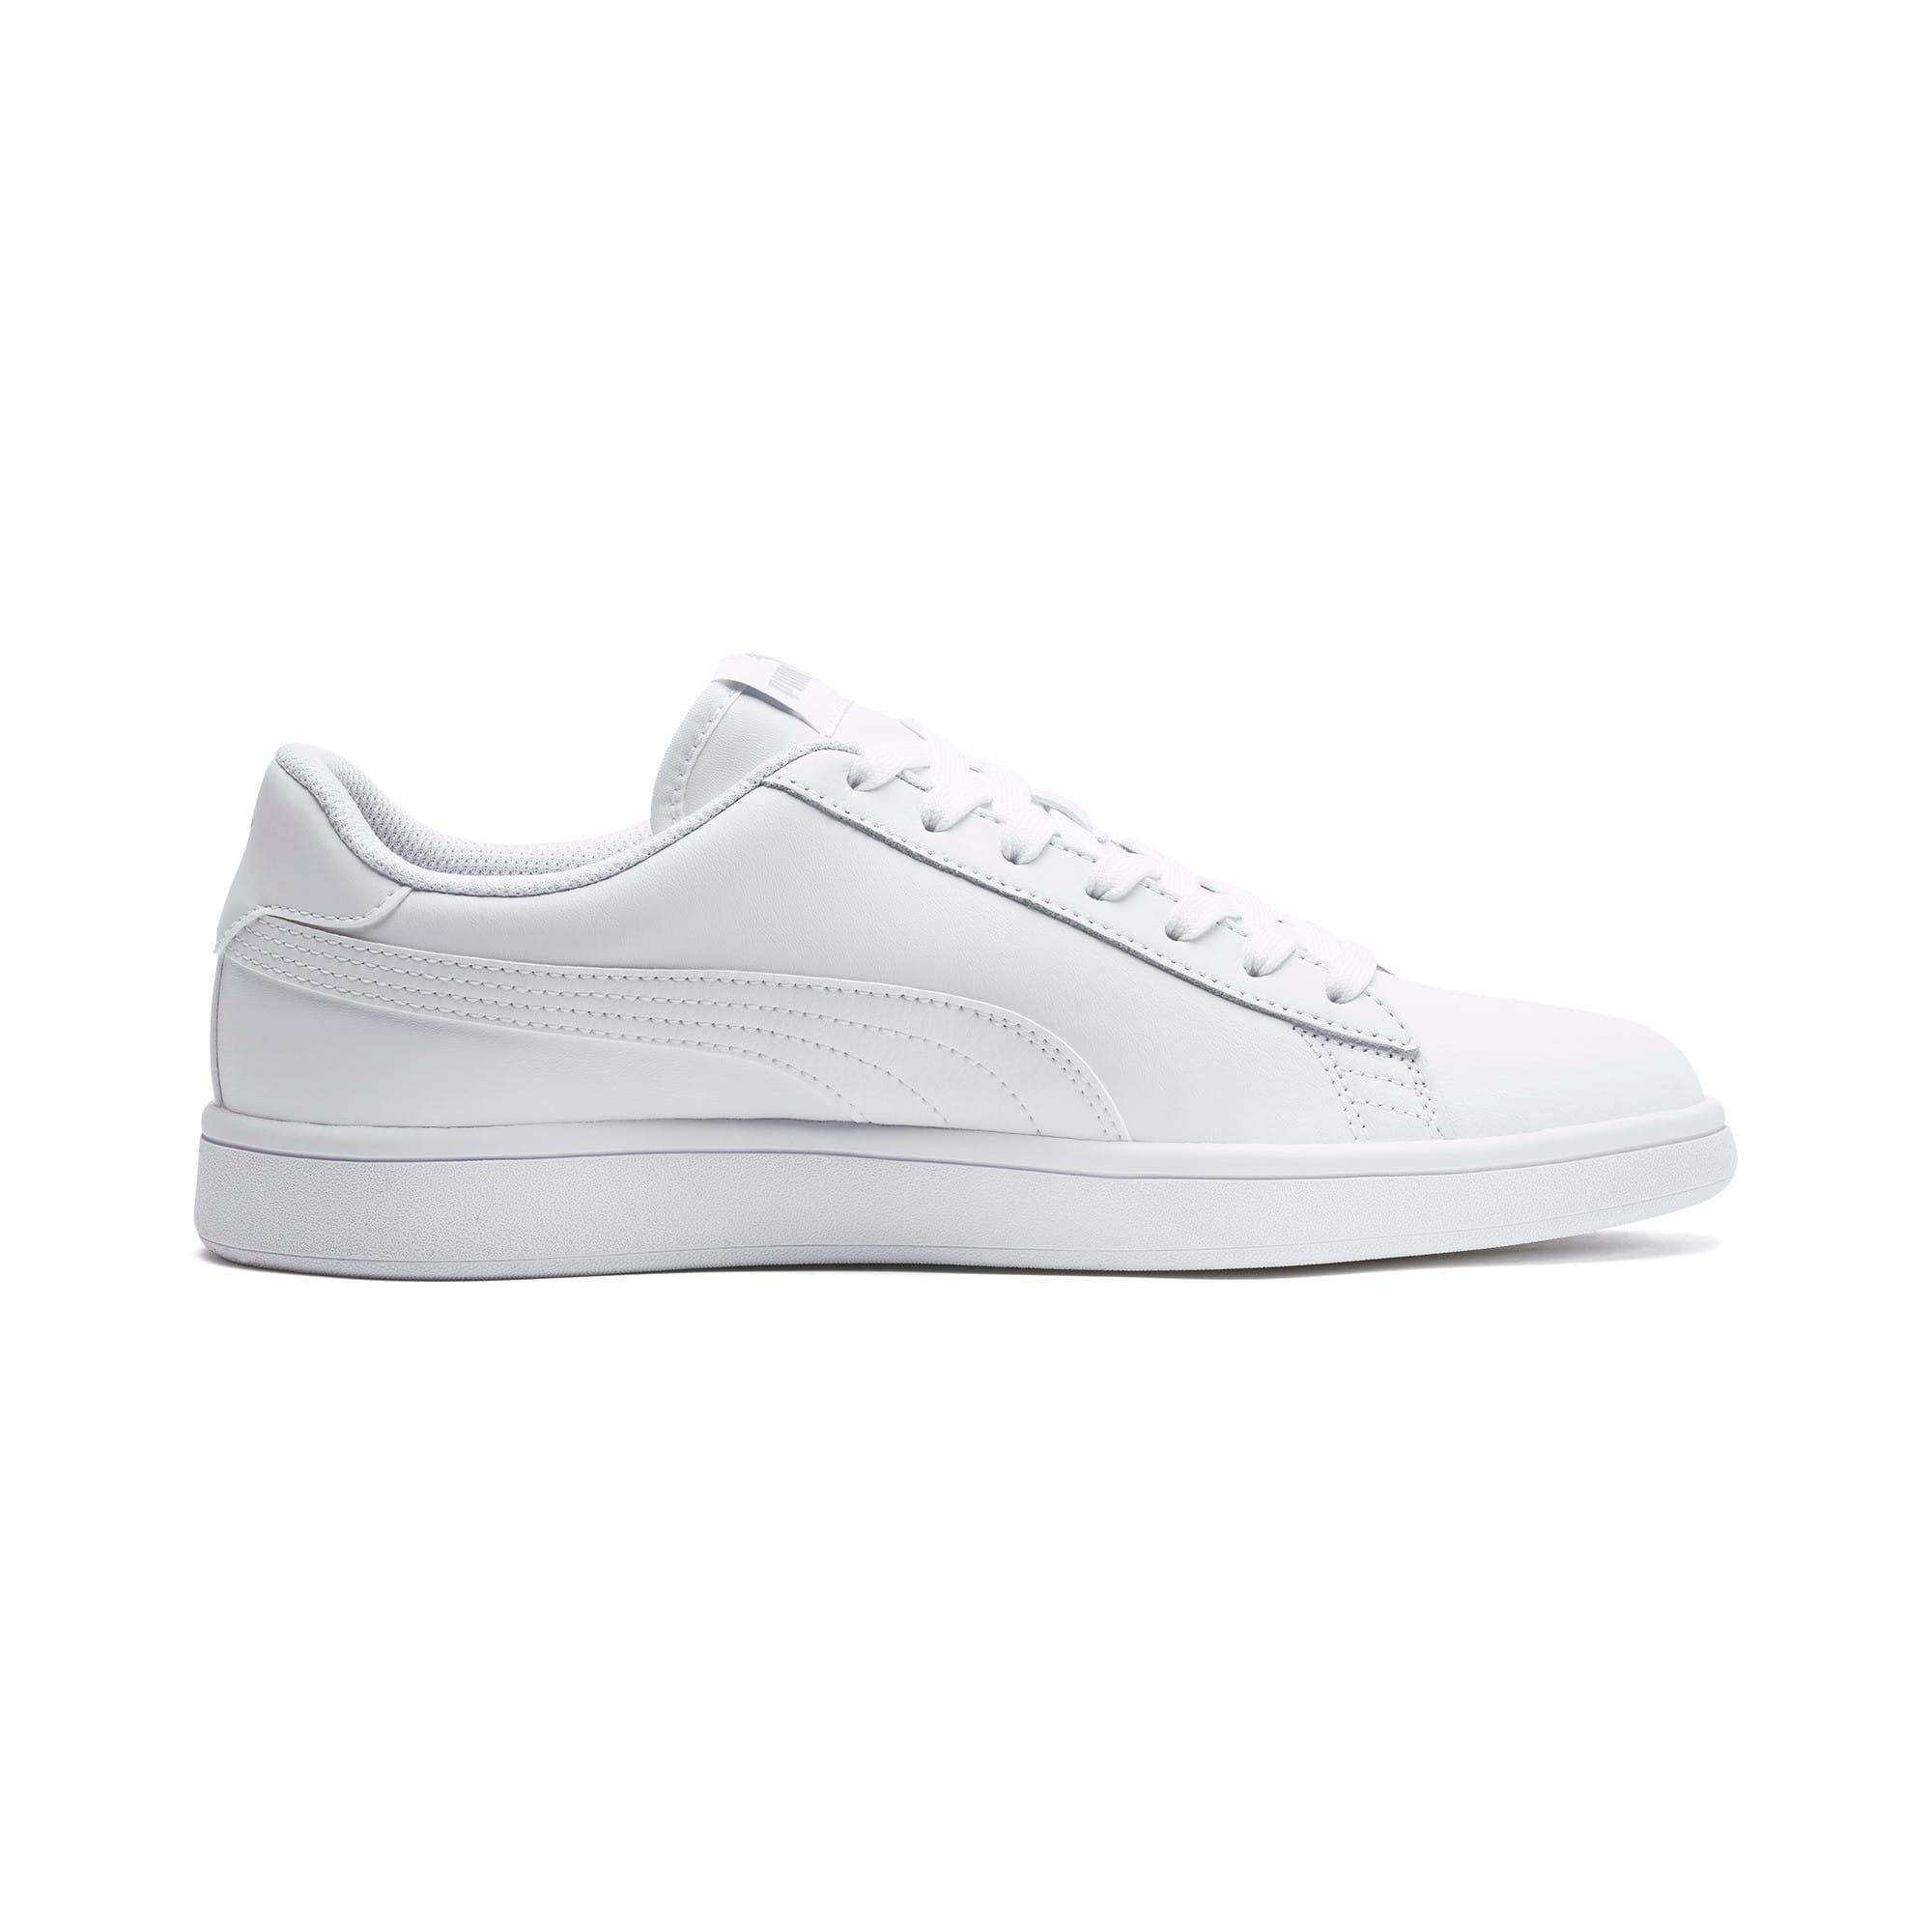 Thumbnail 5 of Puma Smash v2 L, Puma White-Puma White, medium